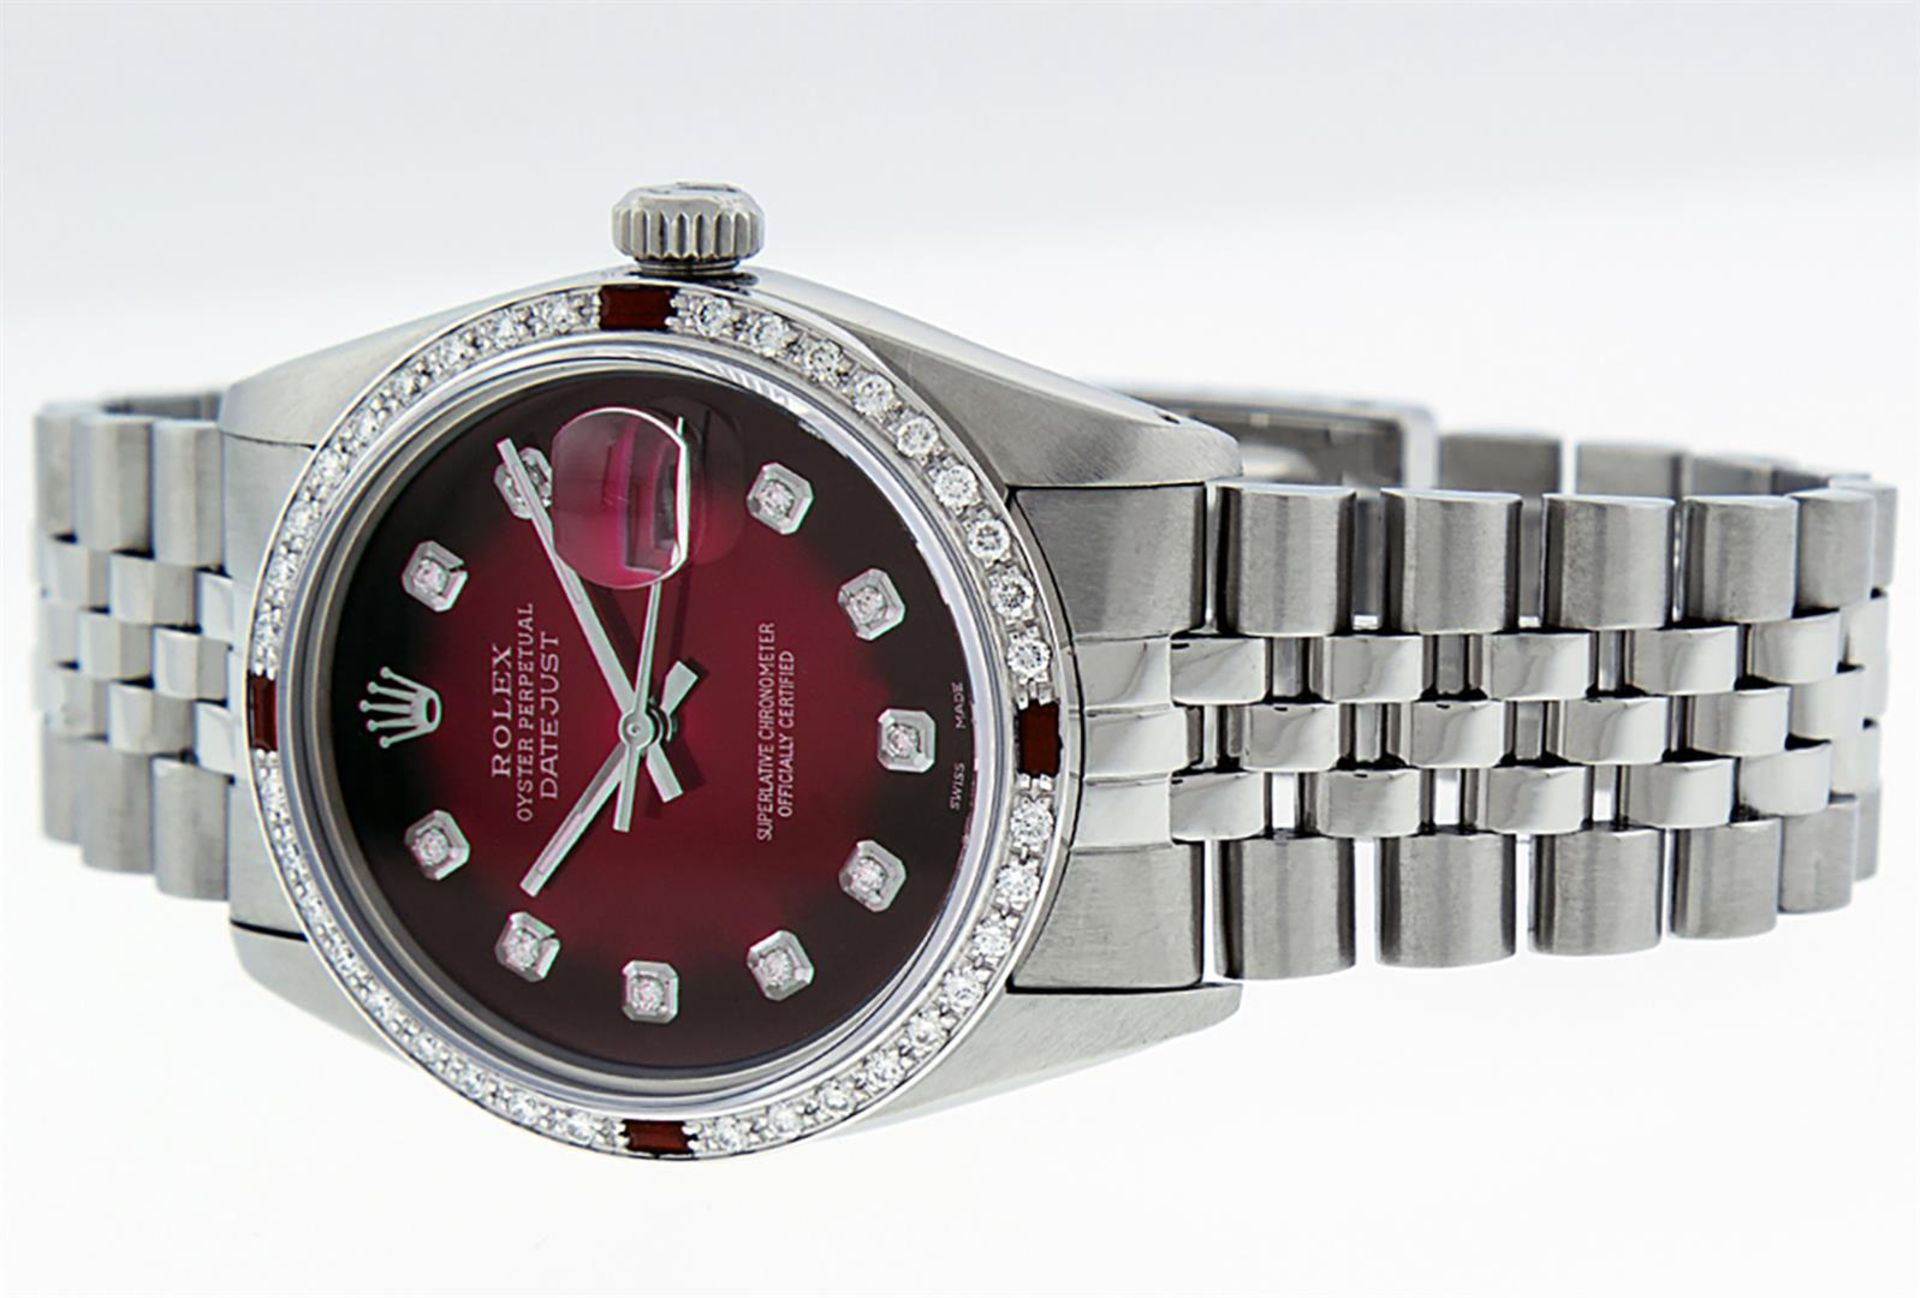 Rolex Mens Stainless Steel Red Vignette Diamond & Ruby Datejust Wristwatch - Image 9 of 9